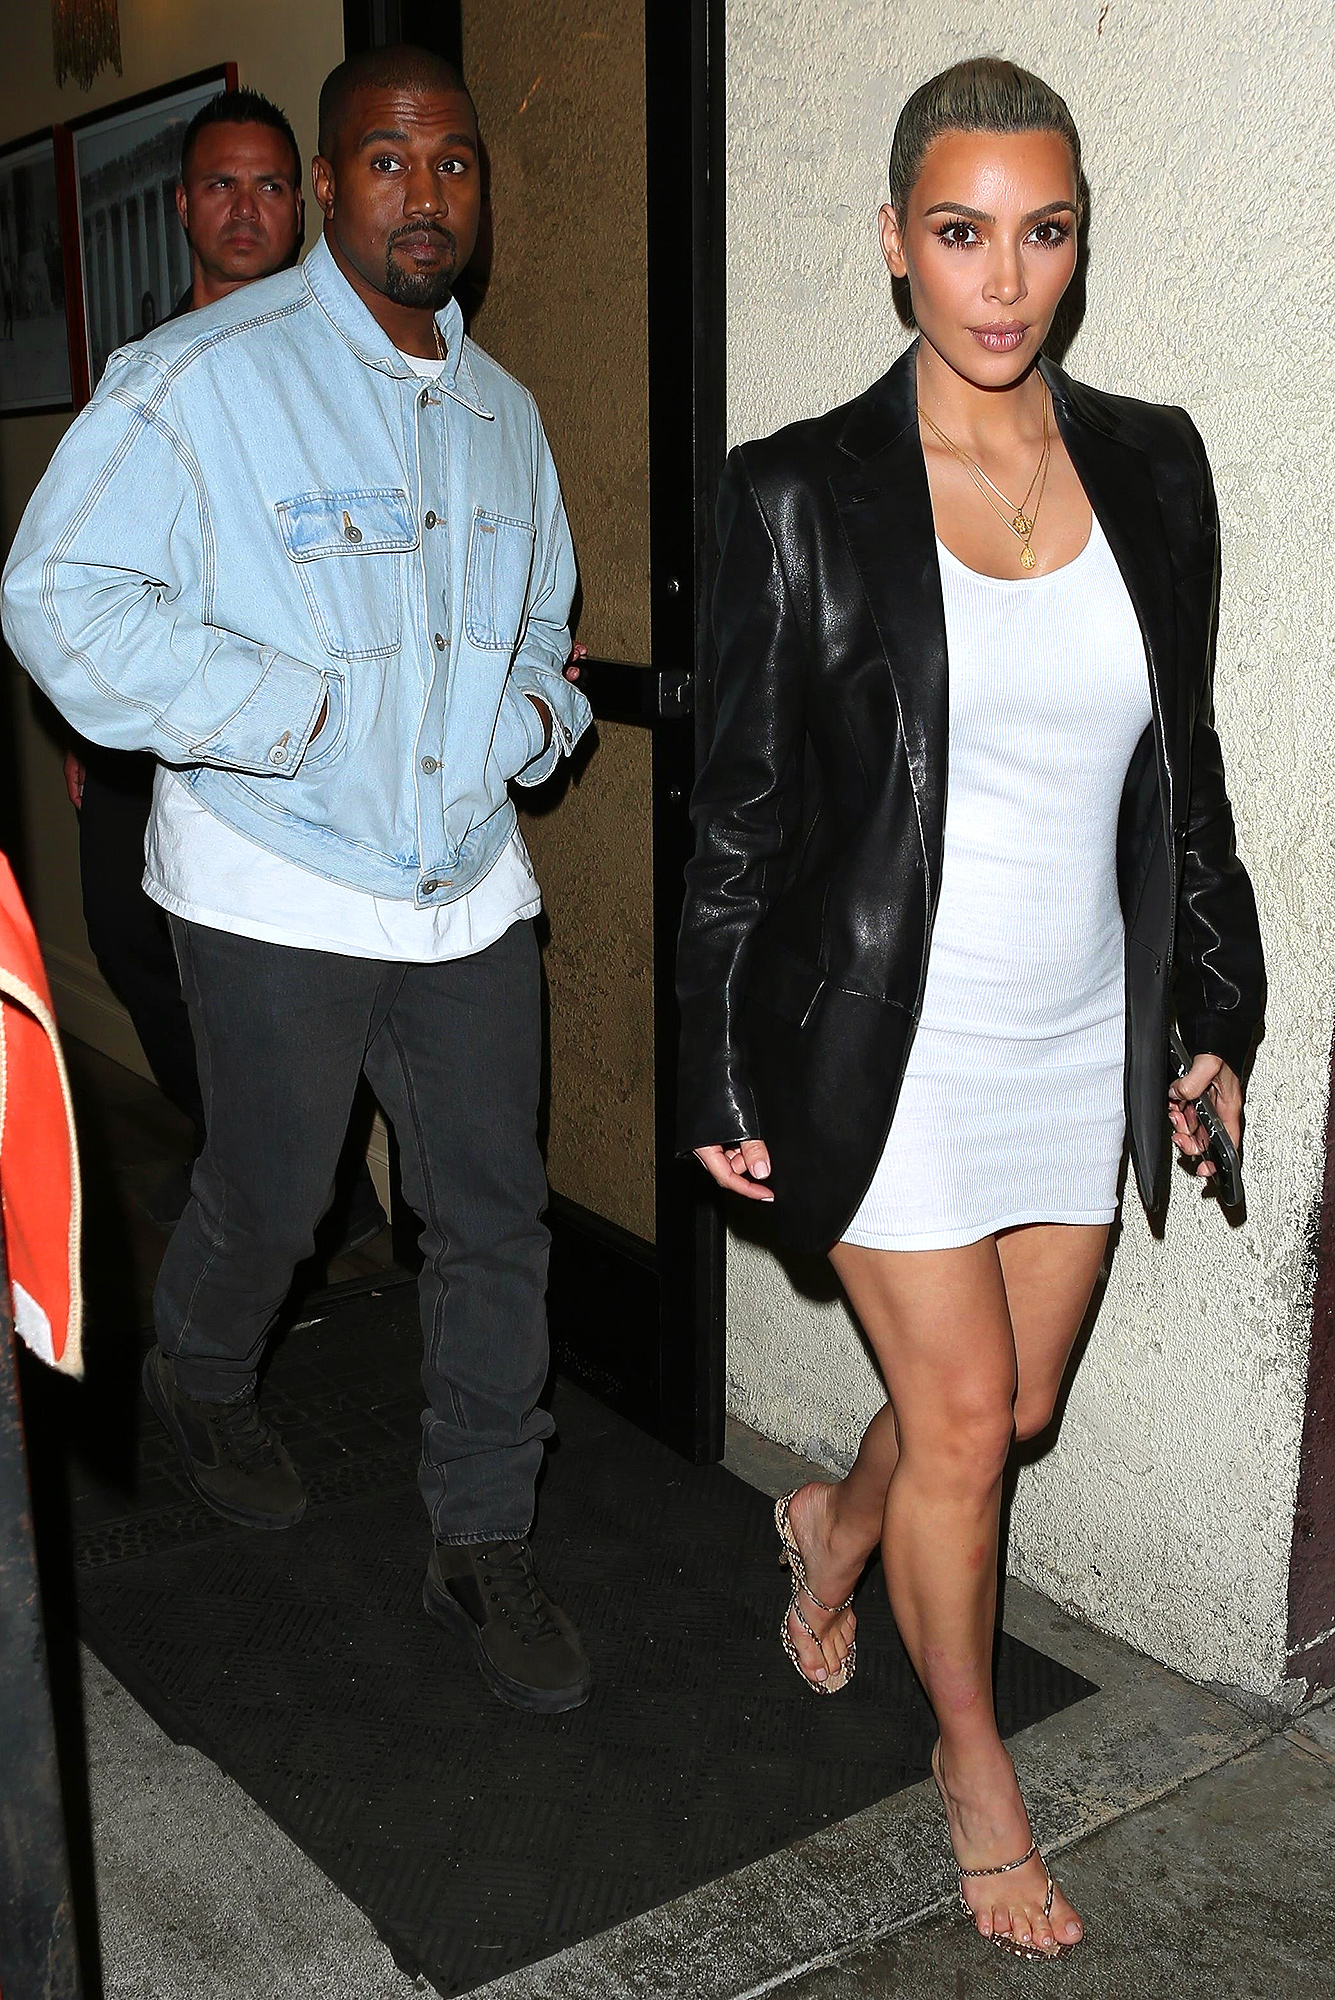 Kim Kardashian and Kanye West exit a family dinner at Carousel Restaurant